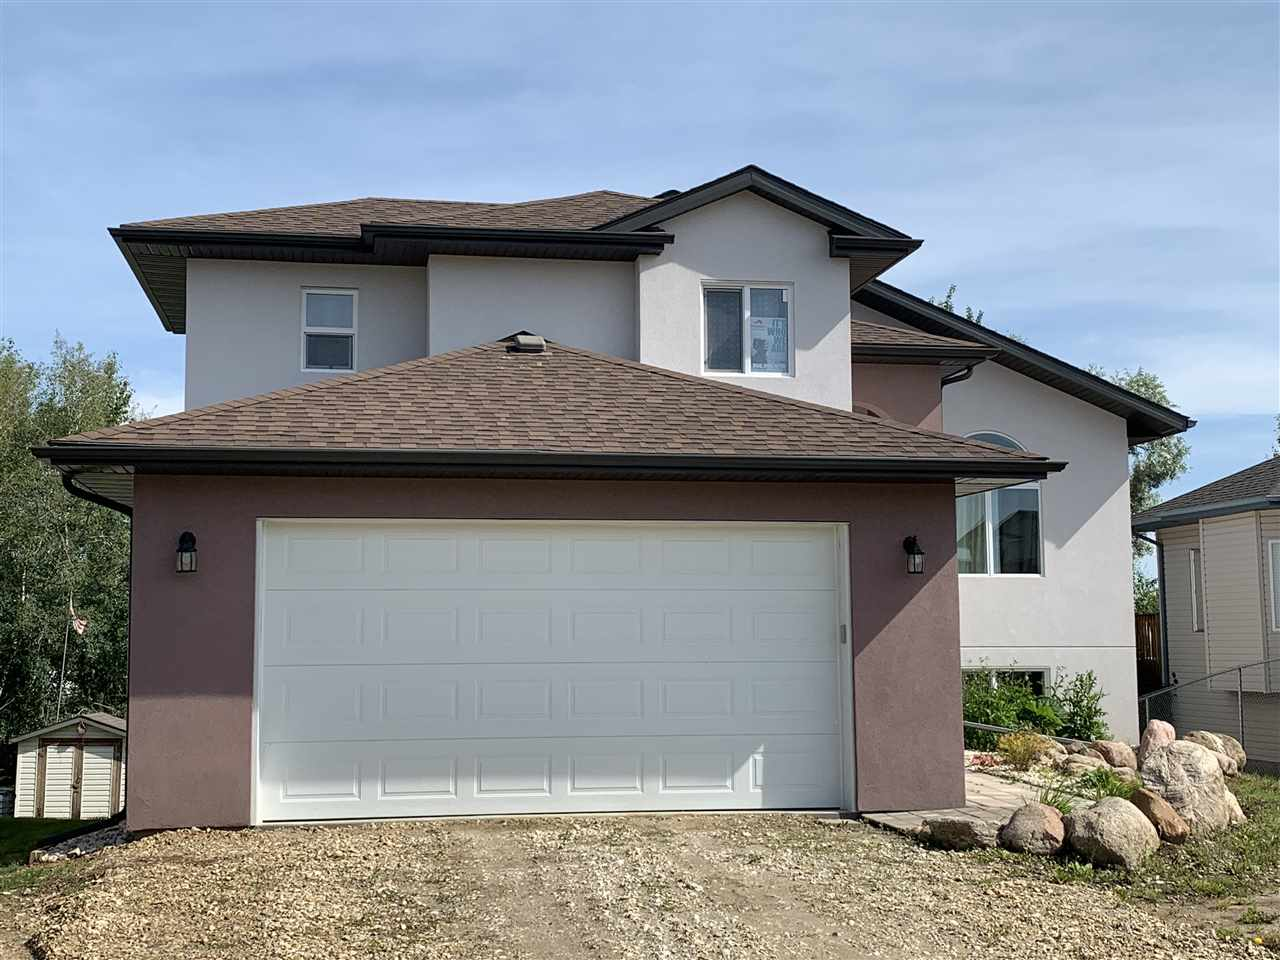 Custom Built Walk-Out backing on to a green space .This well appointed 4 Bedroom 3Bath Finished up and down Home is Brand New. Features 10 year warranty has a Large Master Suite over the garage .Open floor plan great family home 3 Large decks offering plenty of out door space Kitchen dining Living area wide open concept .Double heated garage basement fully developed large bedroom and 3 piece bath wet bar ,with patio doors for the walk-out This home has the Acrylic Stucco adding extra r value making this home very energy efficient .